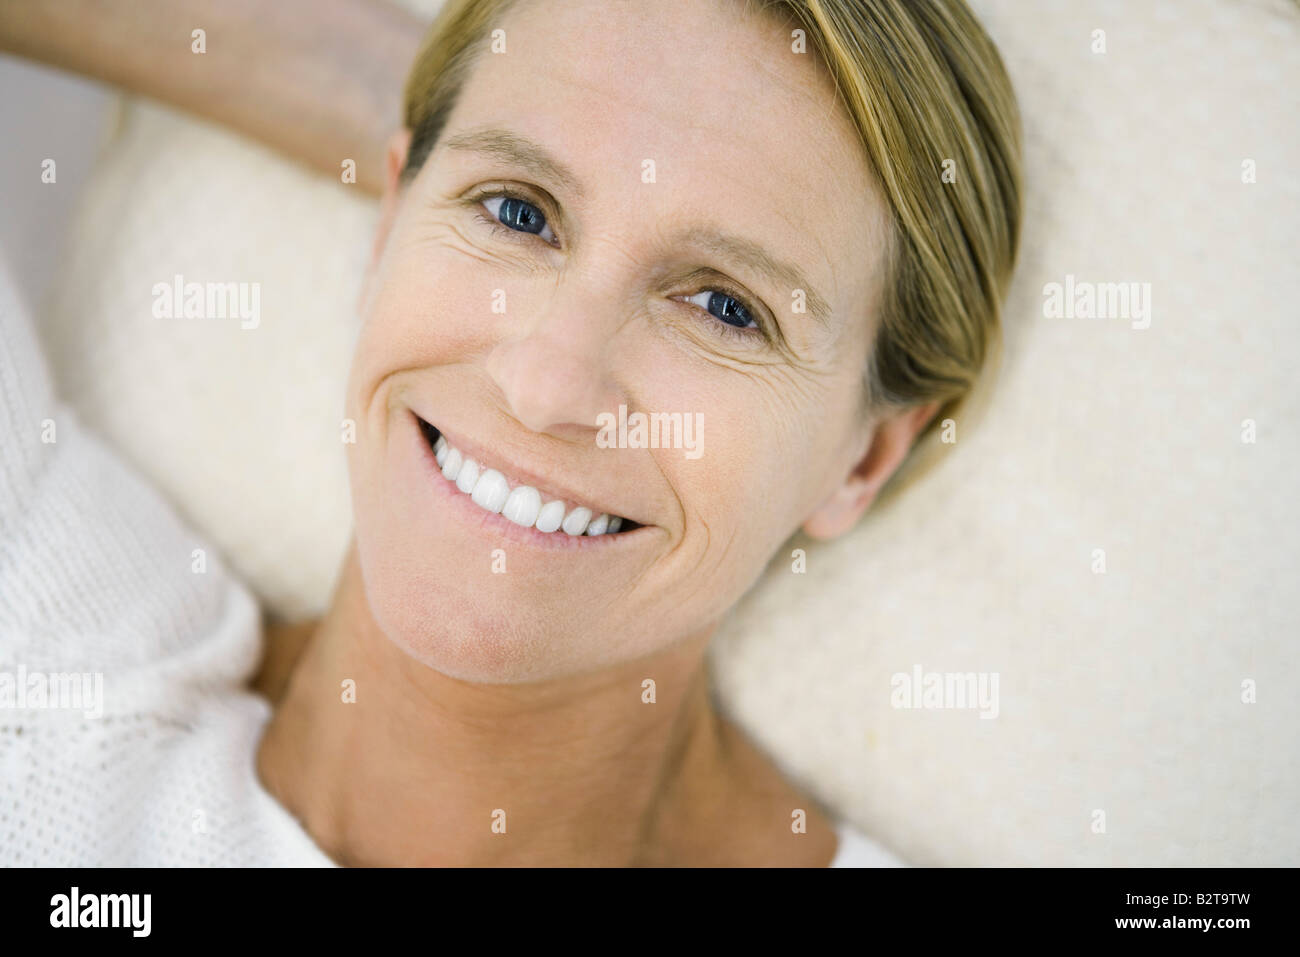 Woman lying on back, smiling at camera, high angle view - Stock Image